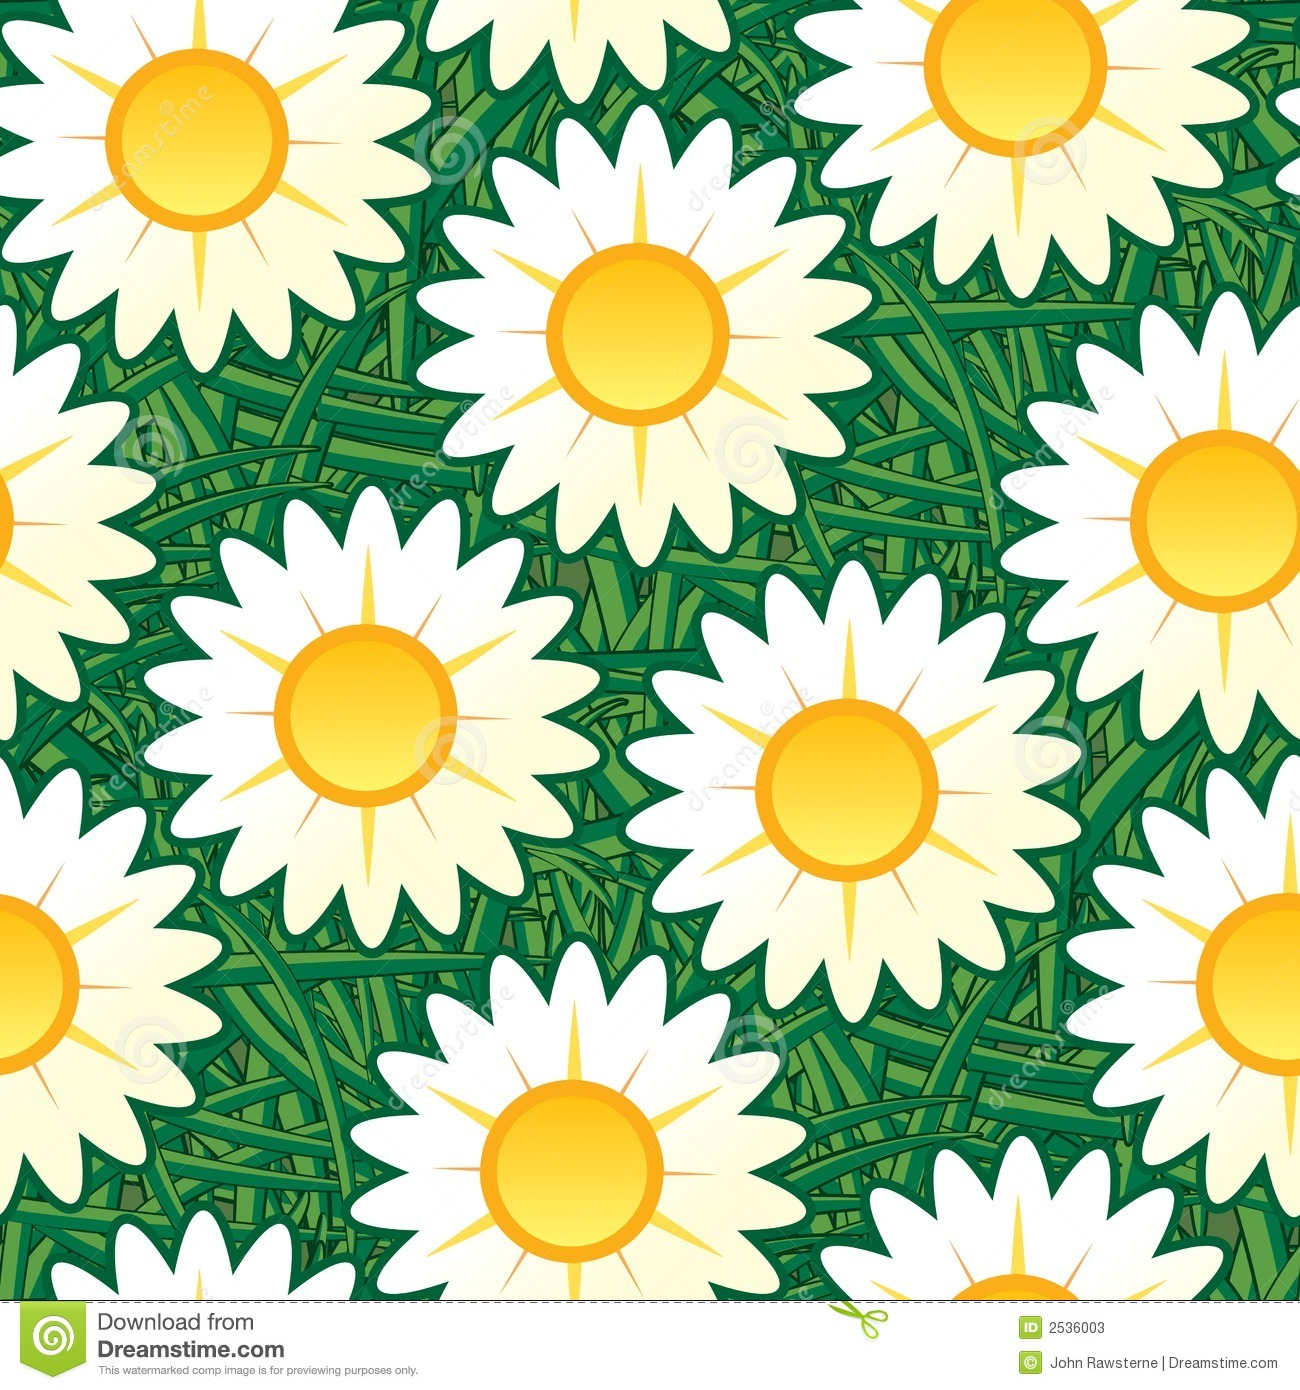 Daisy pattern wallpaper - photo#50